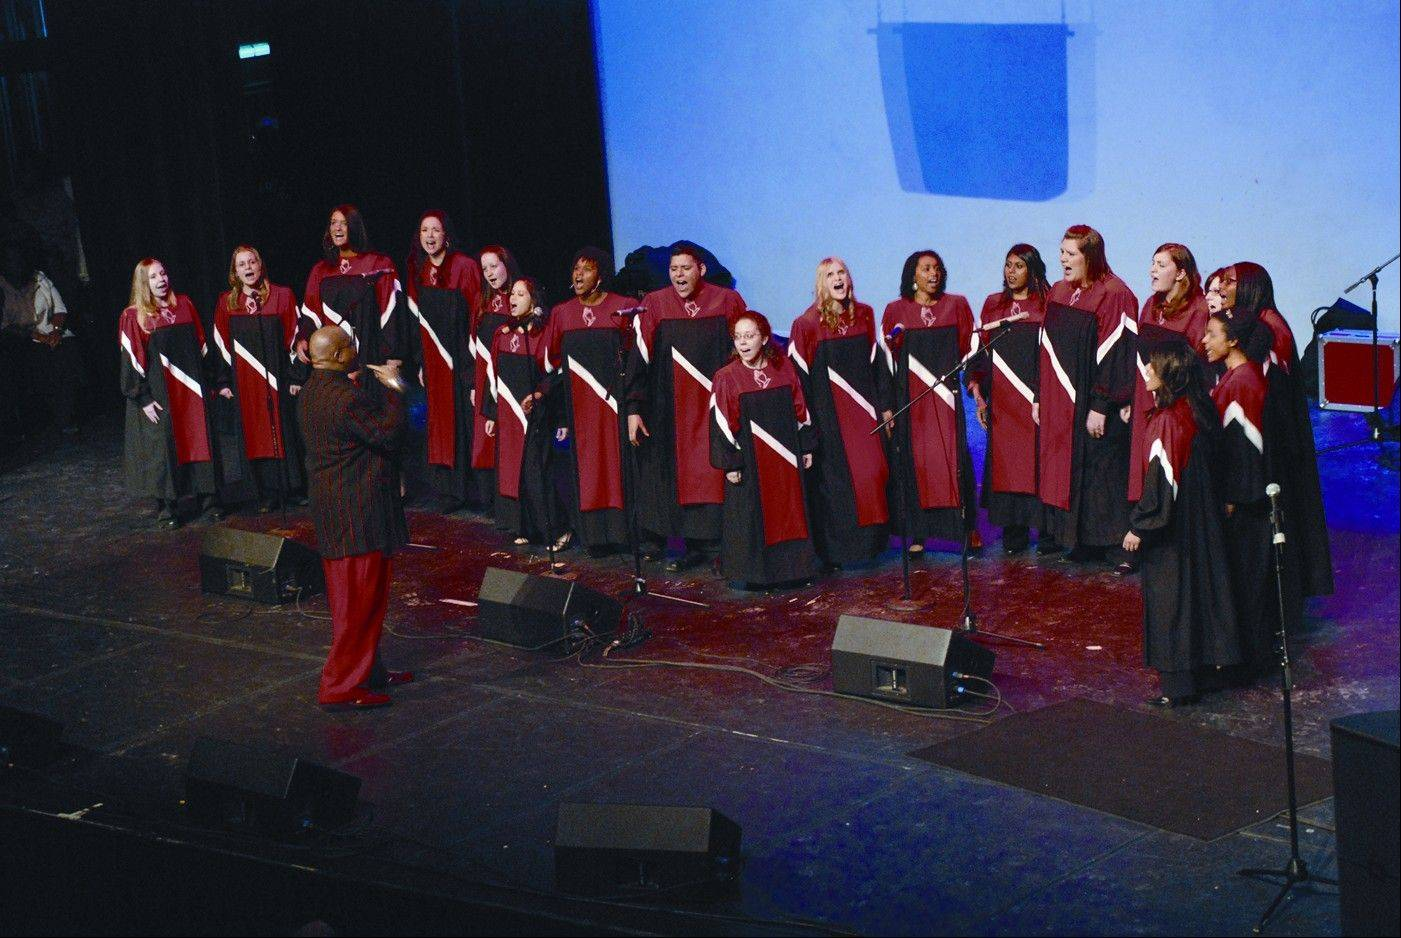 The Voices of Praise Choir is featured as part of the 25th anniversary of North Central College's Gospel Extravaganza in Naperville.